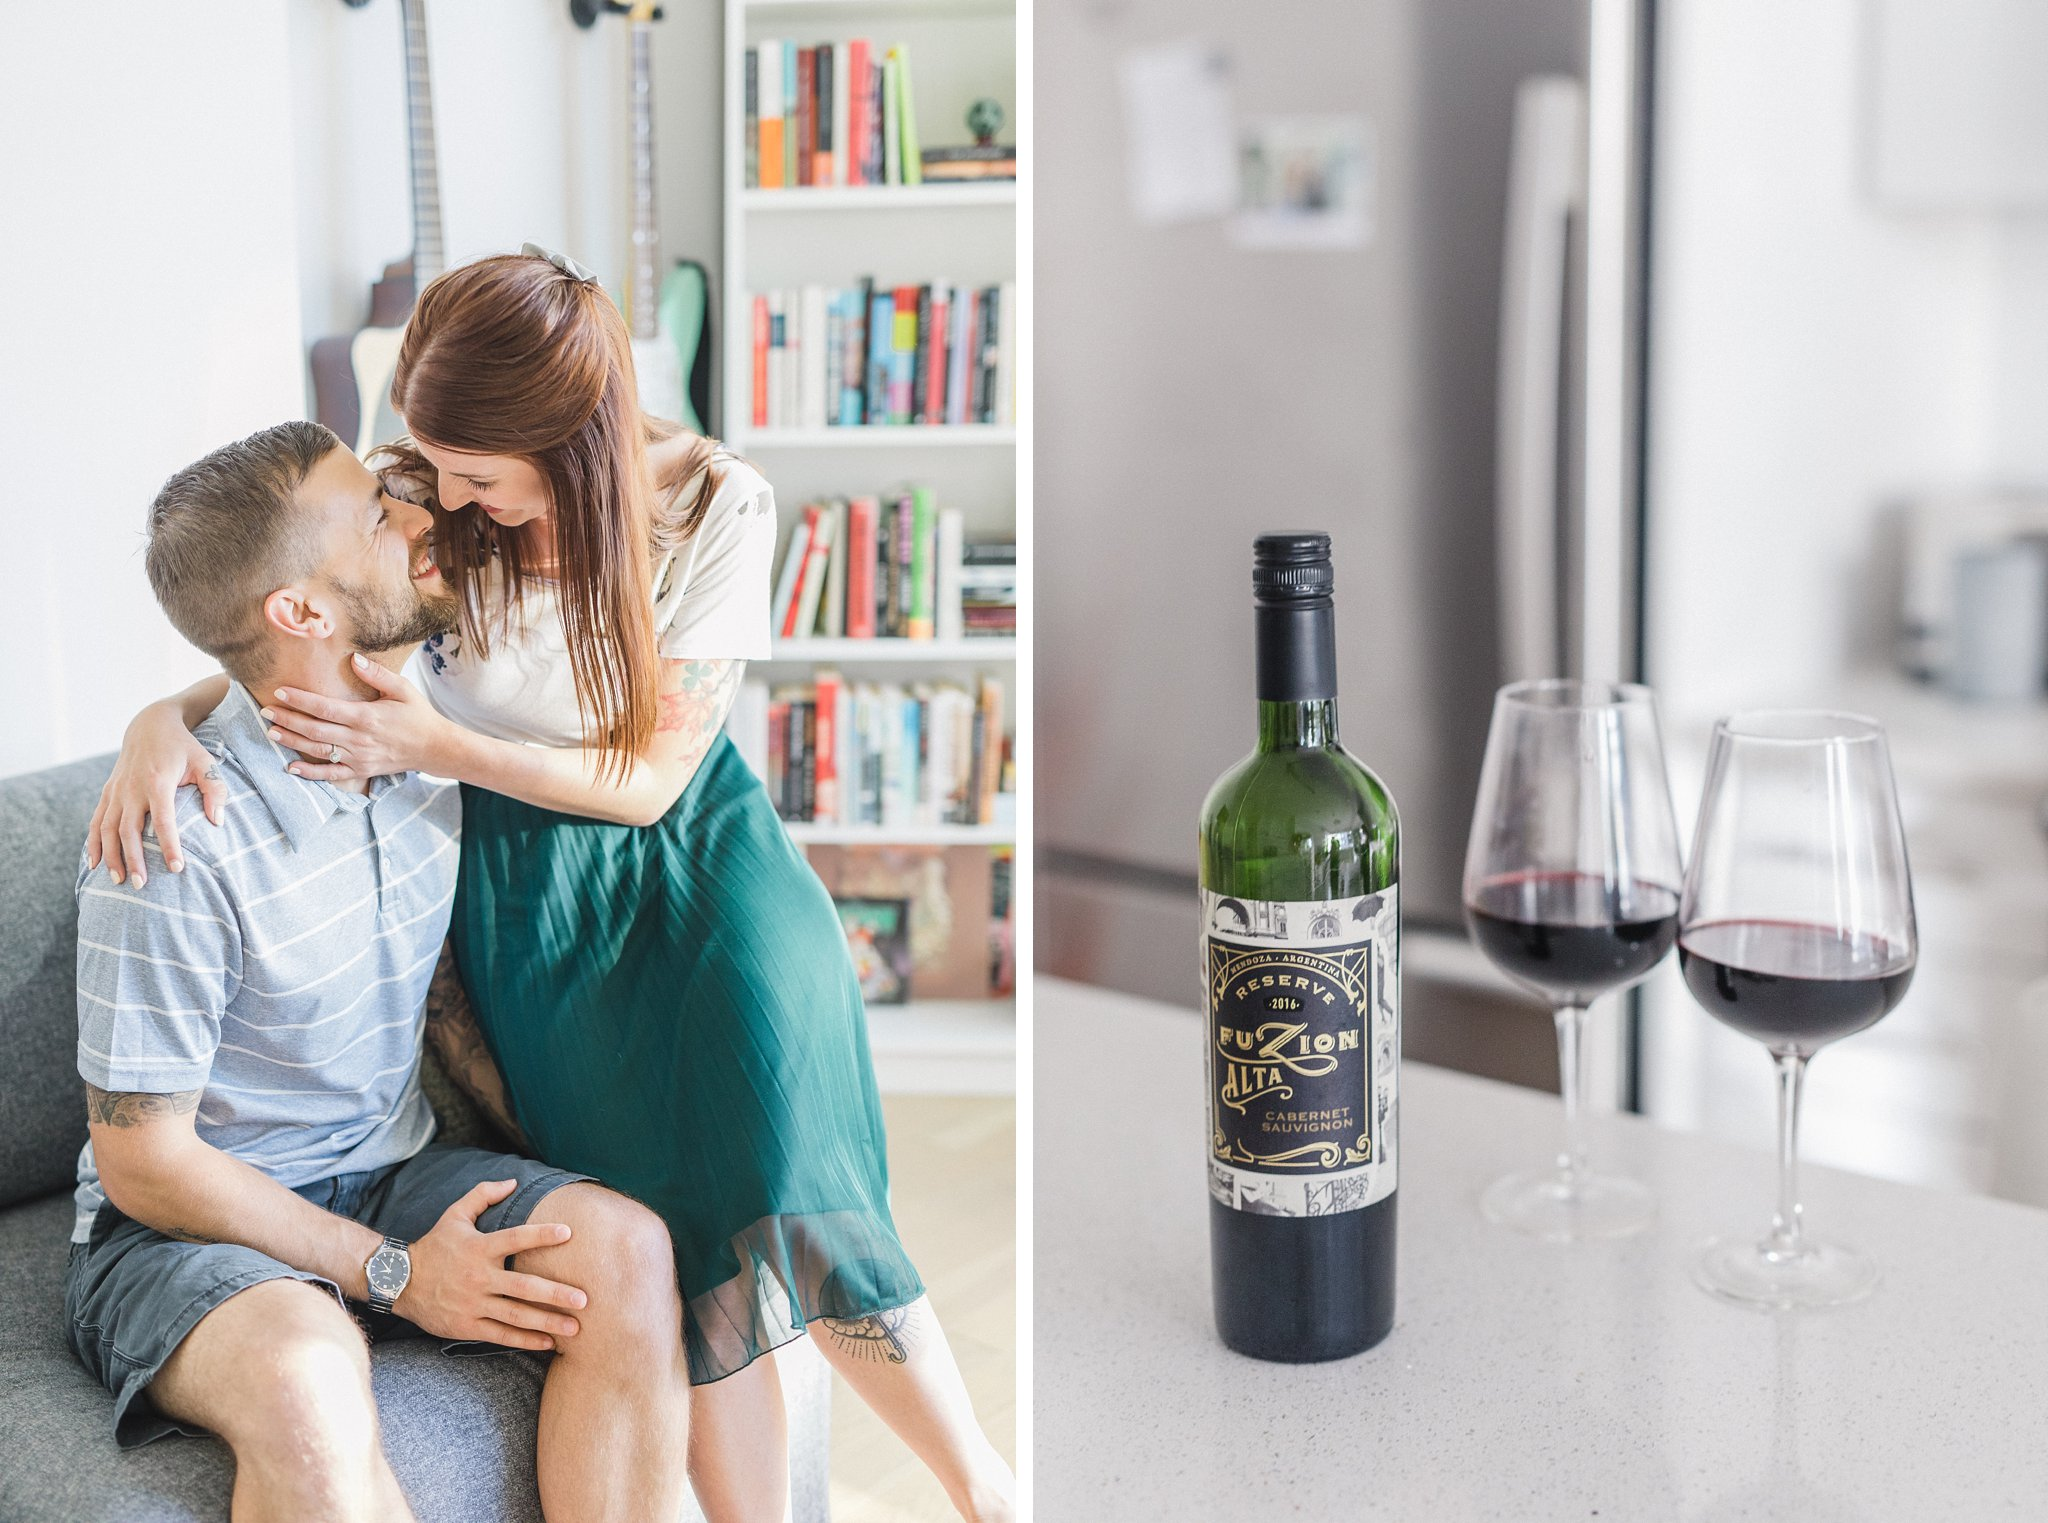 Glass of wine condo engagement photos Hintonburg Ottawa